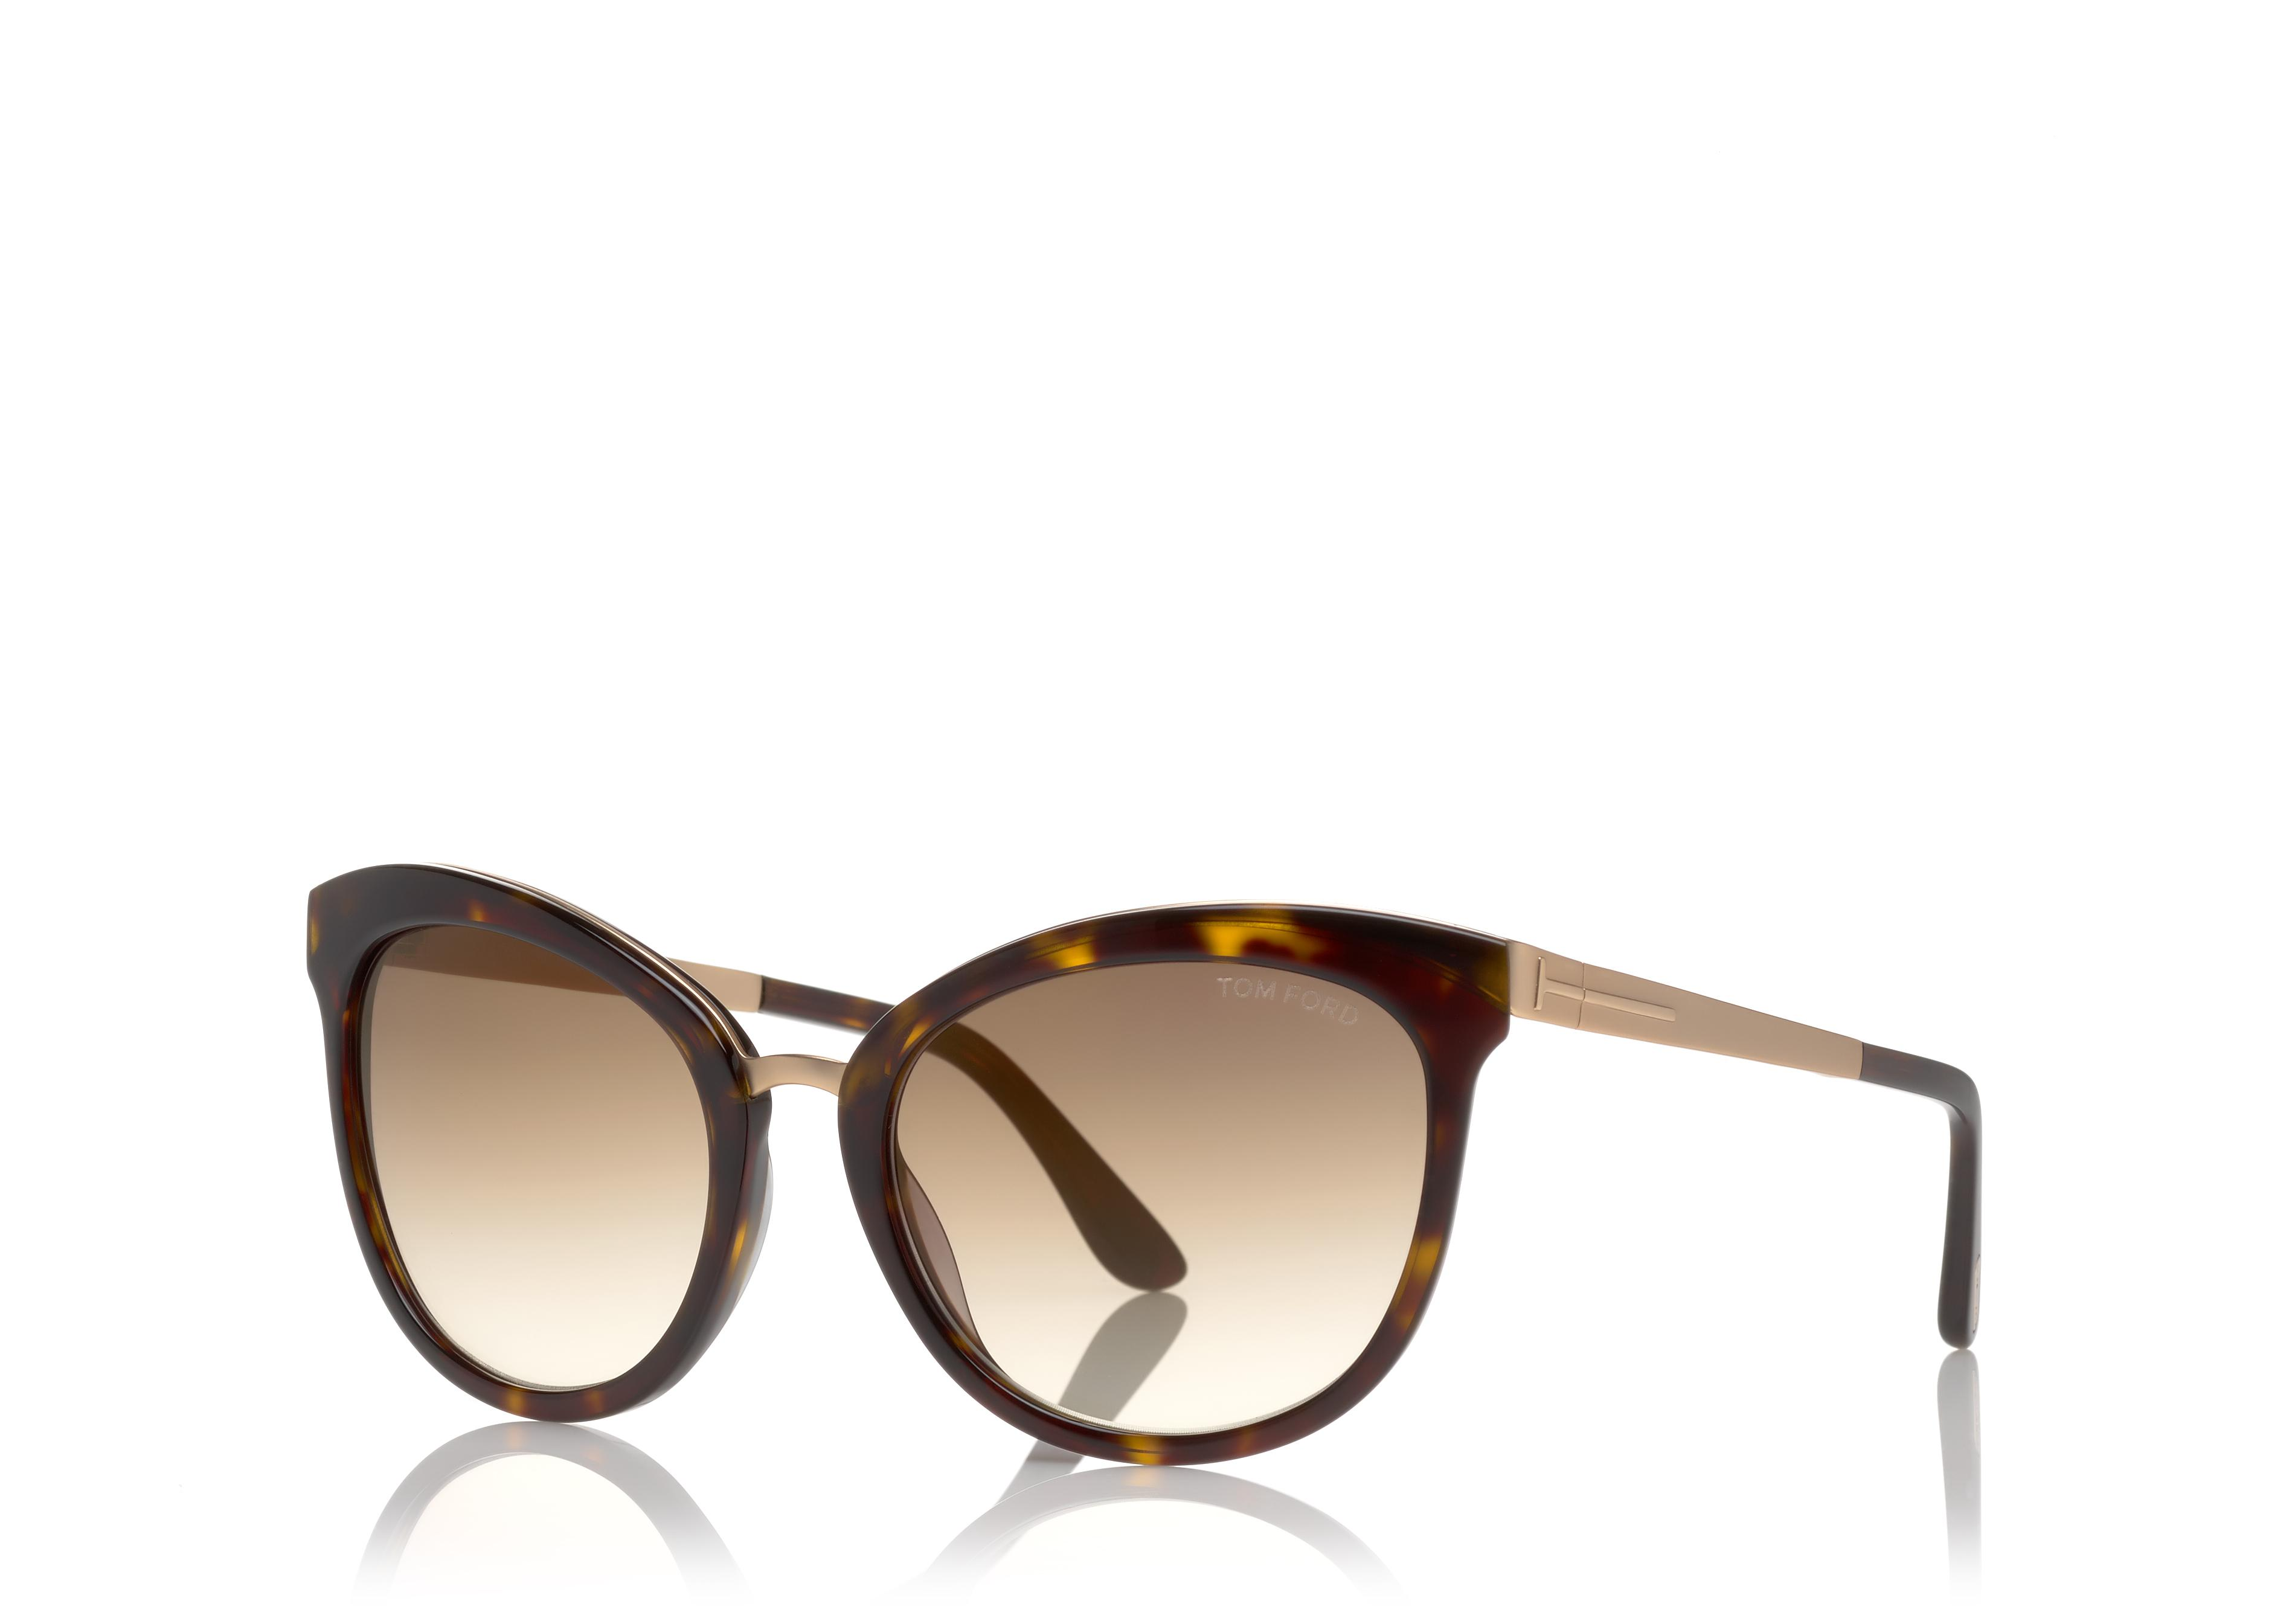 Emma Gradient Frame Cateye Glasses : TOM FORD Ft0461 Emma Tortoiseshell Cat-Eye Frame ...